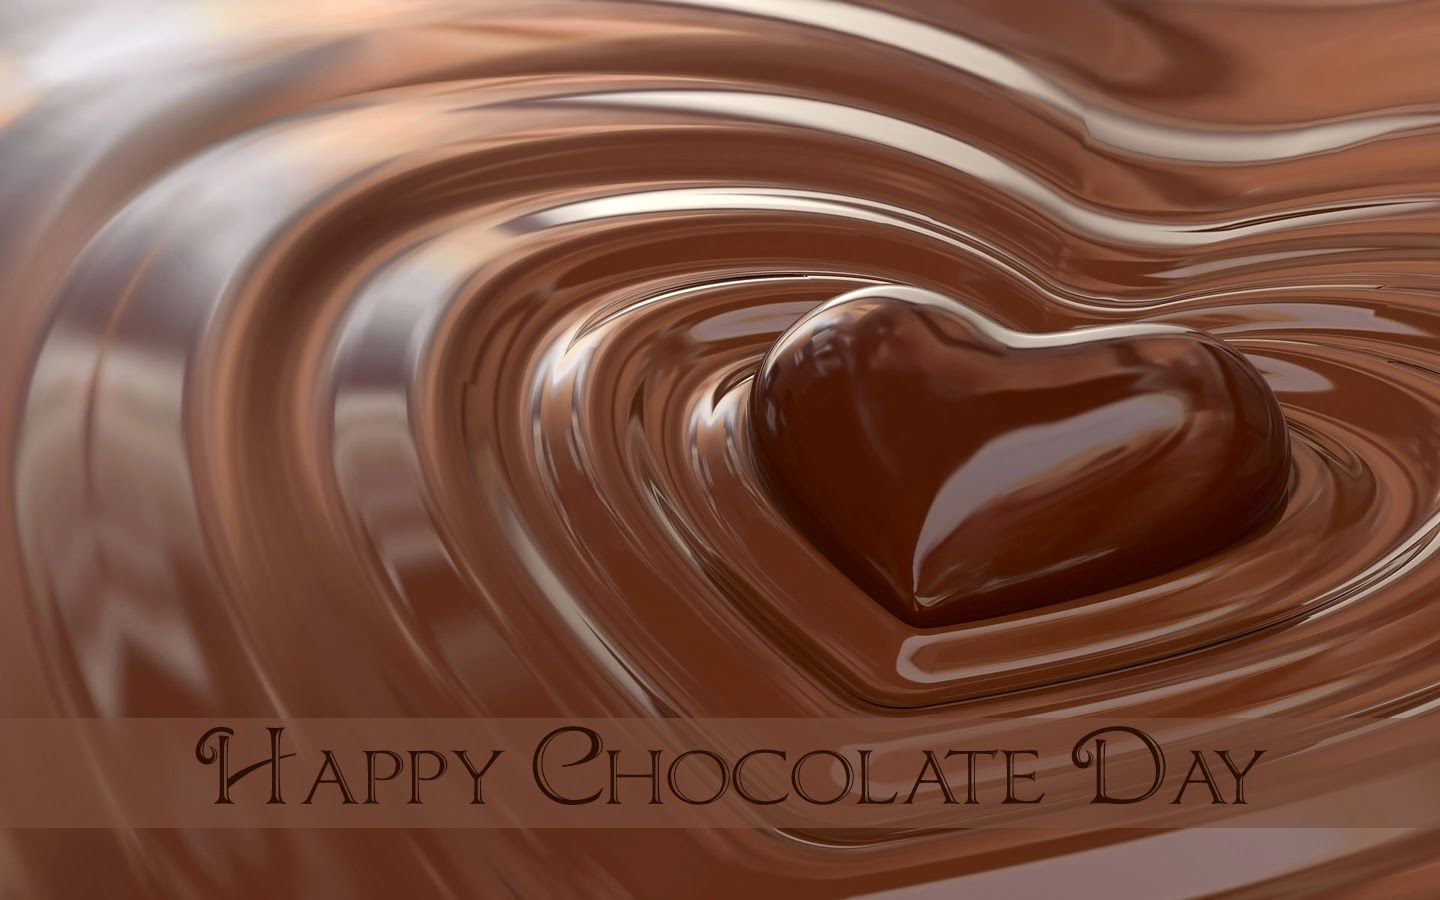 Chocolate Day pics